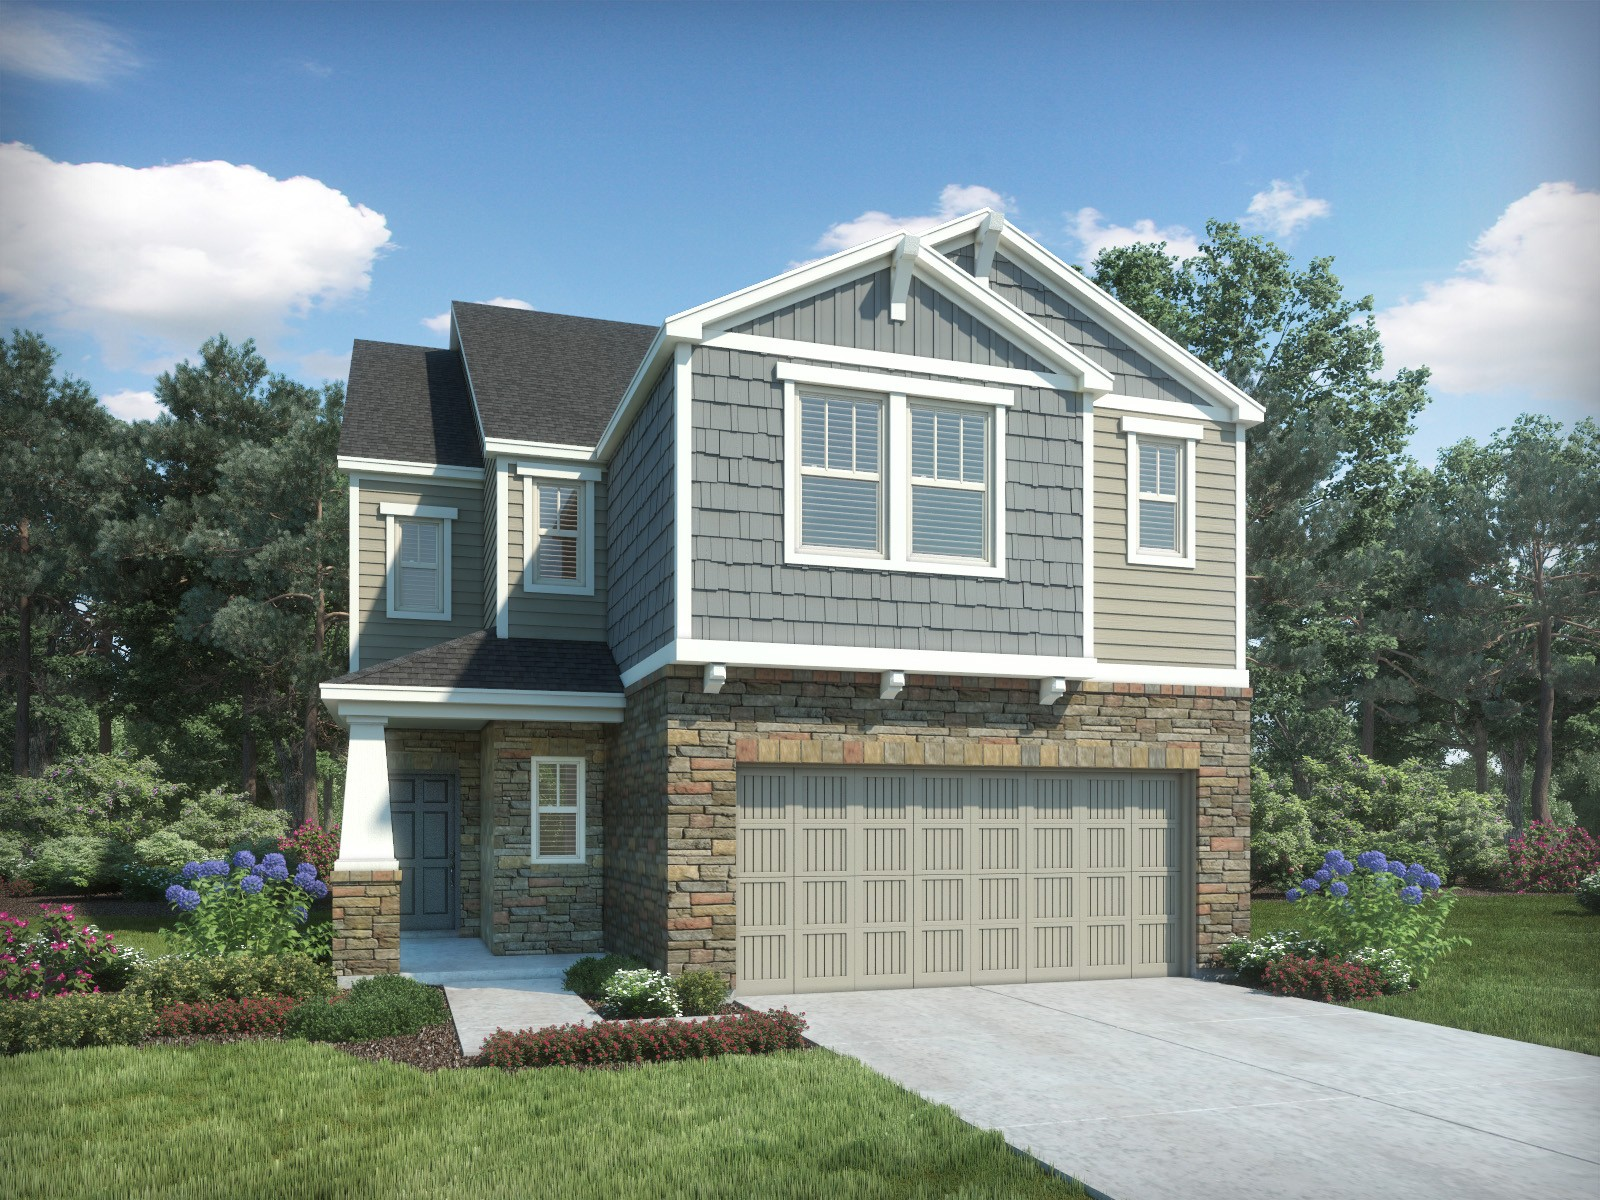 New Homes For Sale In Buford Ga